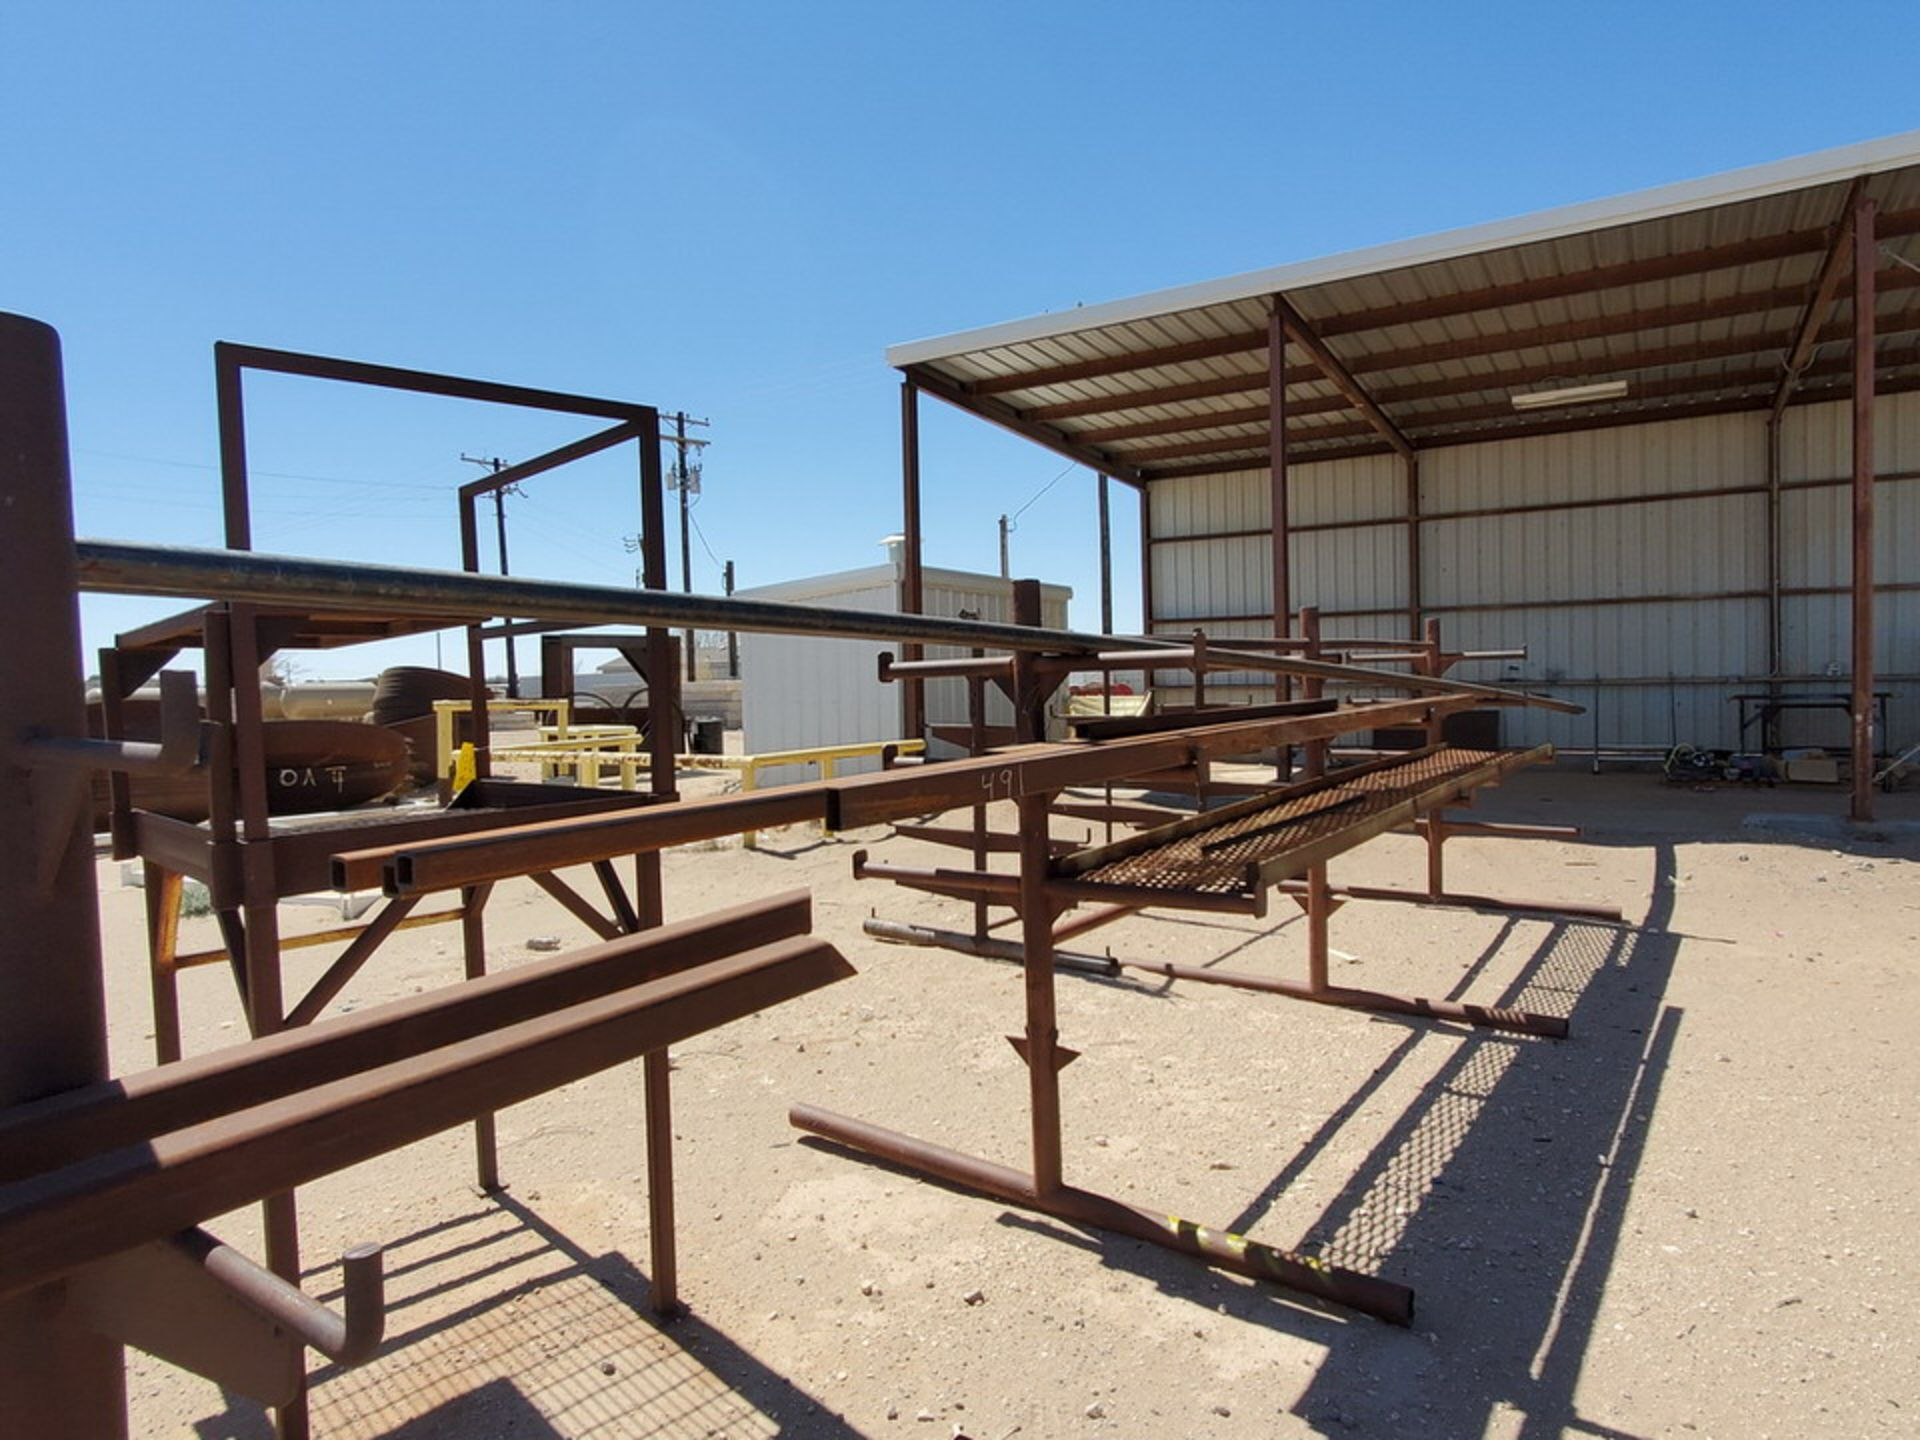 """(3) 3-Post Doublesided Cantilever Racks (2) 10' x 6' x 6'6"""", (1) 17' x 7' x 6'6"""" - Image 5 of 17"""